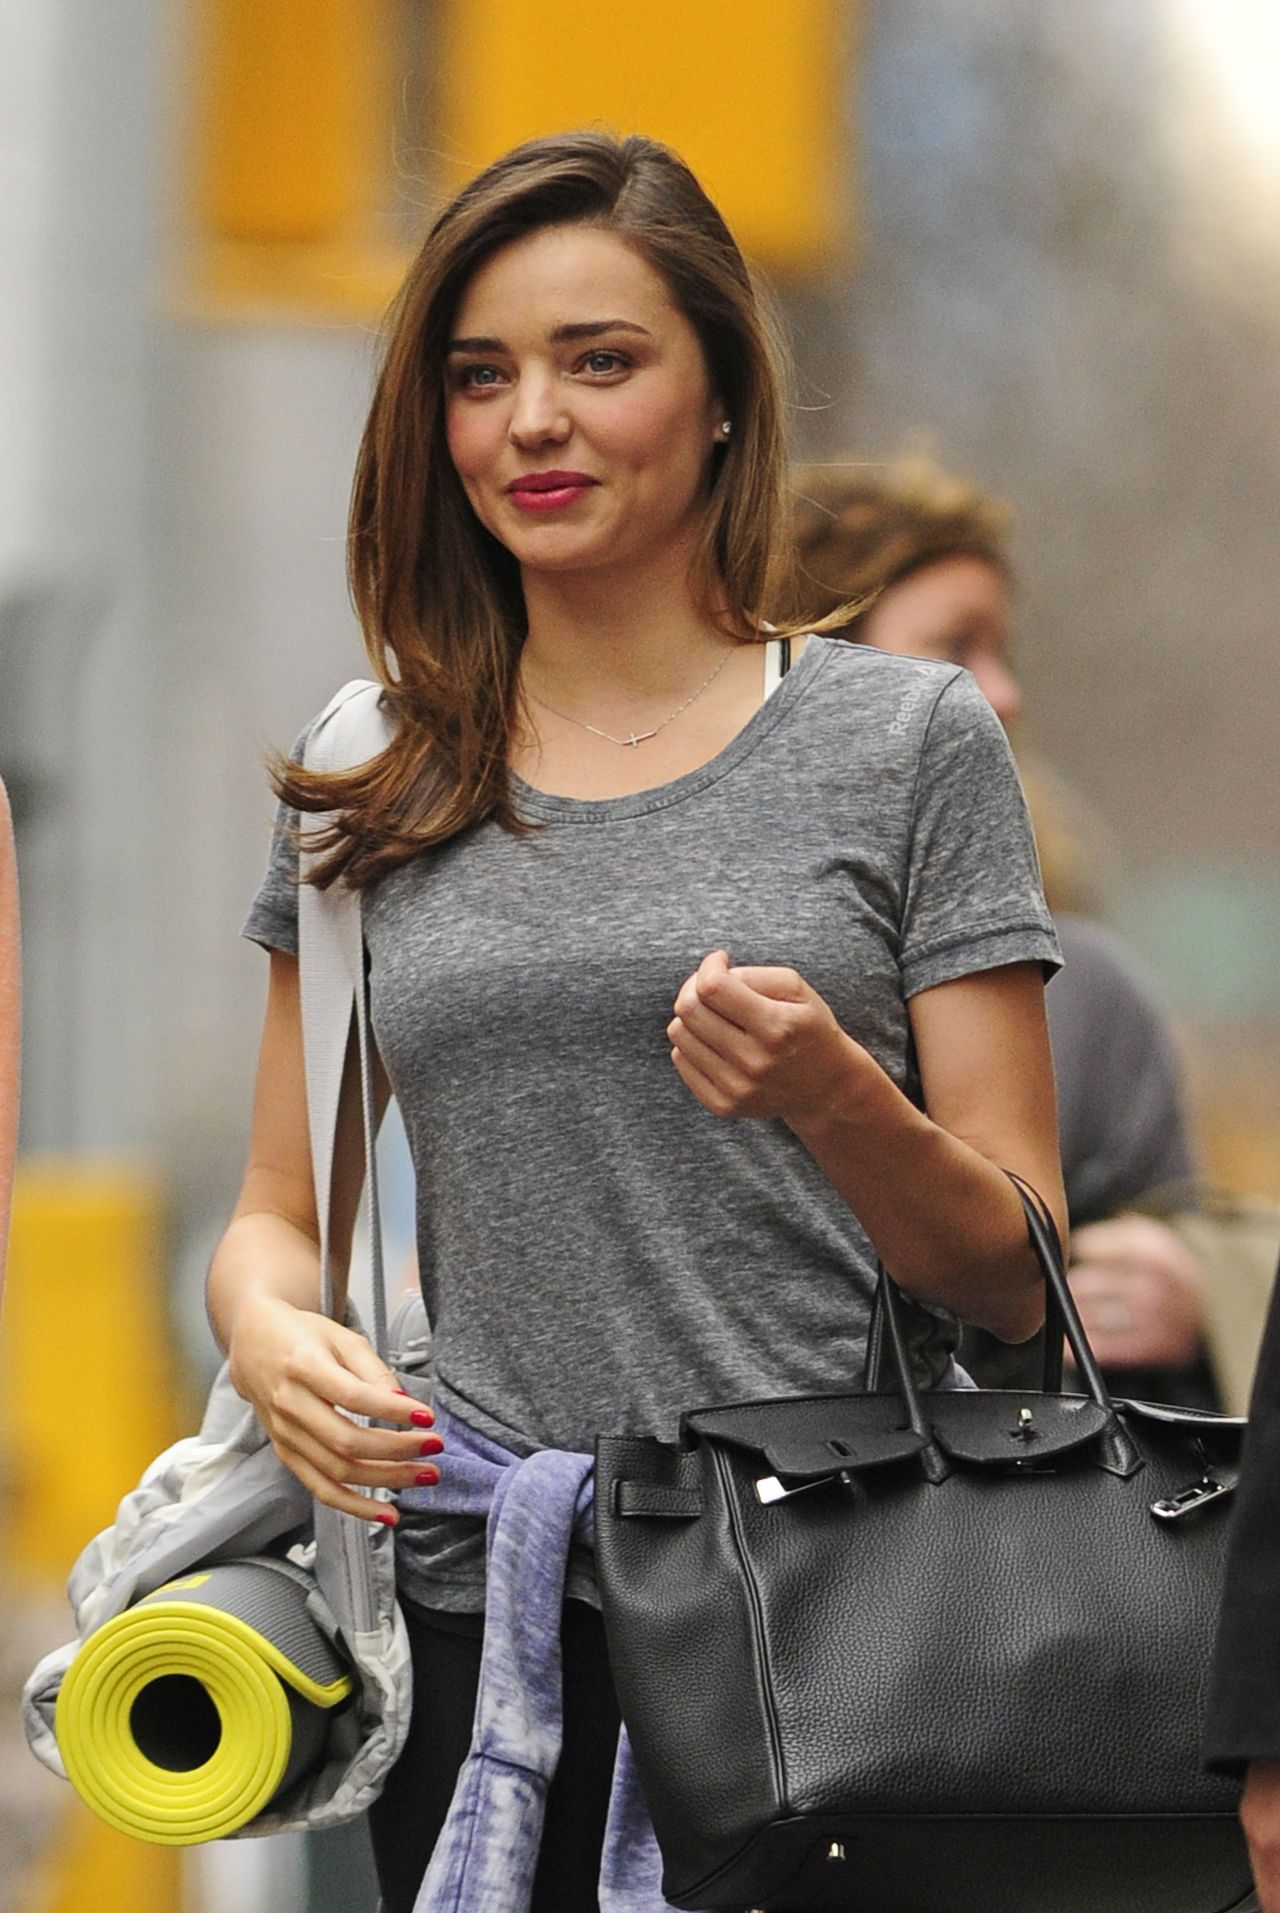 Miranda Kerr Street Style - After Her Yoga Session - March 2014